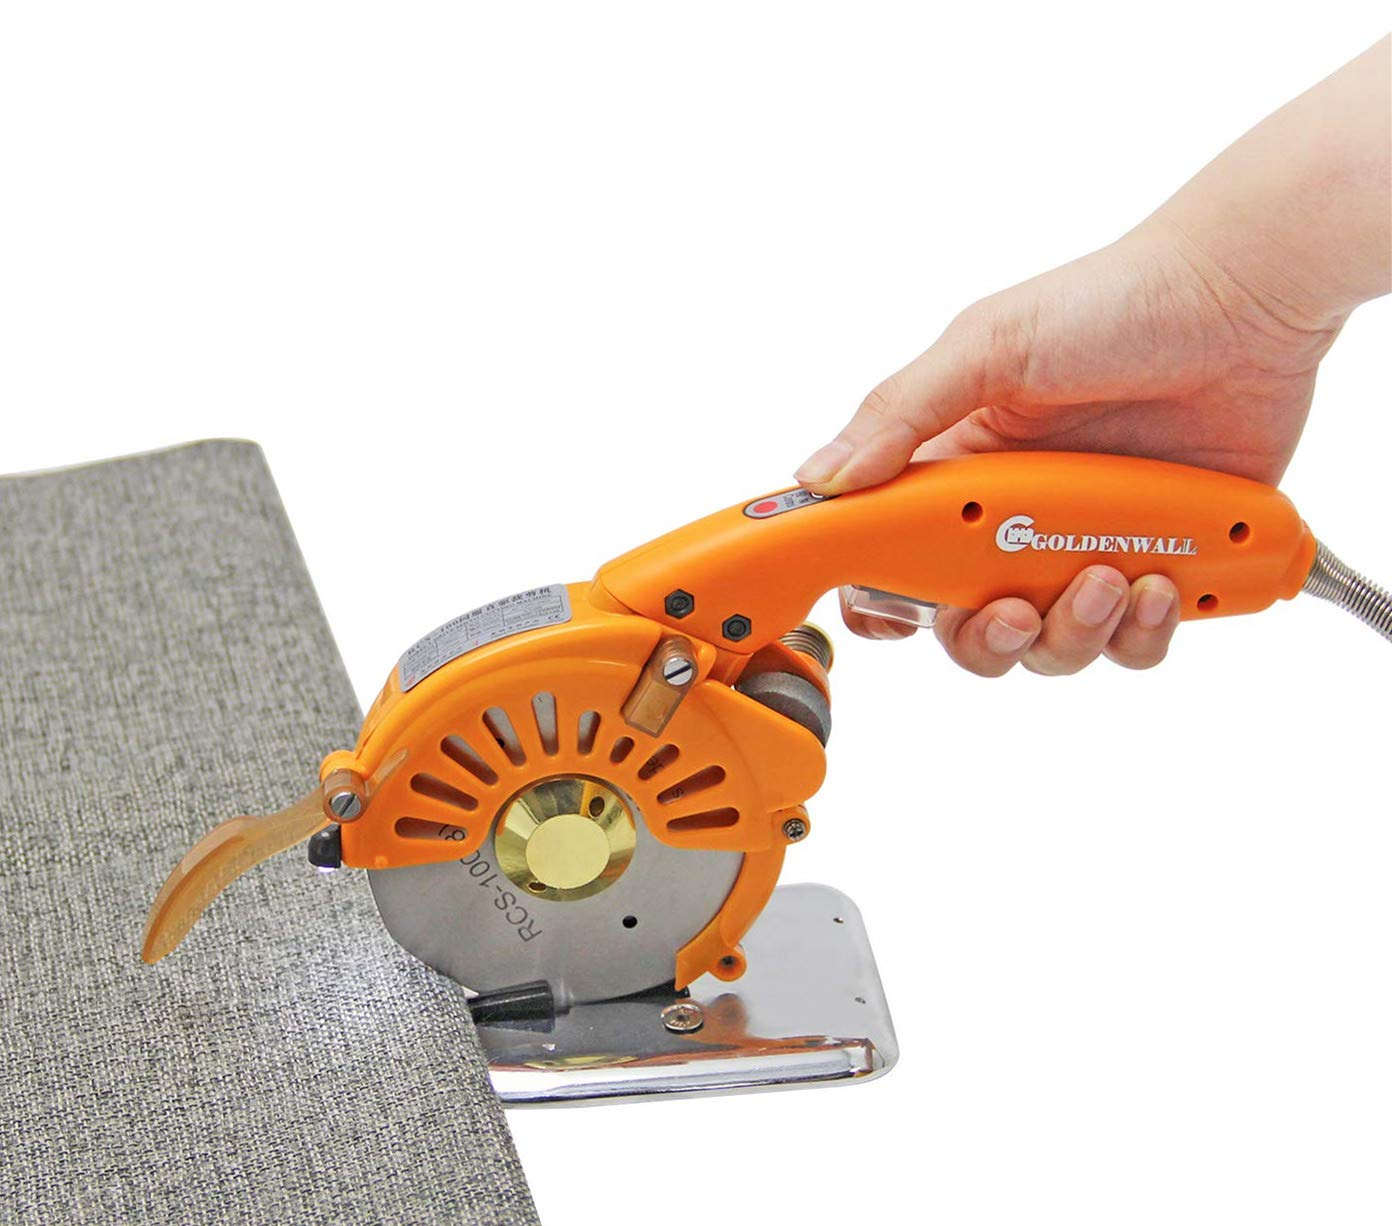 CGOLDENWALL Electric Rotary Fabric Cutter Scissors Cloth Cutting Machine Cloth Cutter Ideal for Multi-Layer Cloth Leather Fabric Paper 4-Inch Round Blade & LED Light (Cutting Range:≤ 27mm)